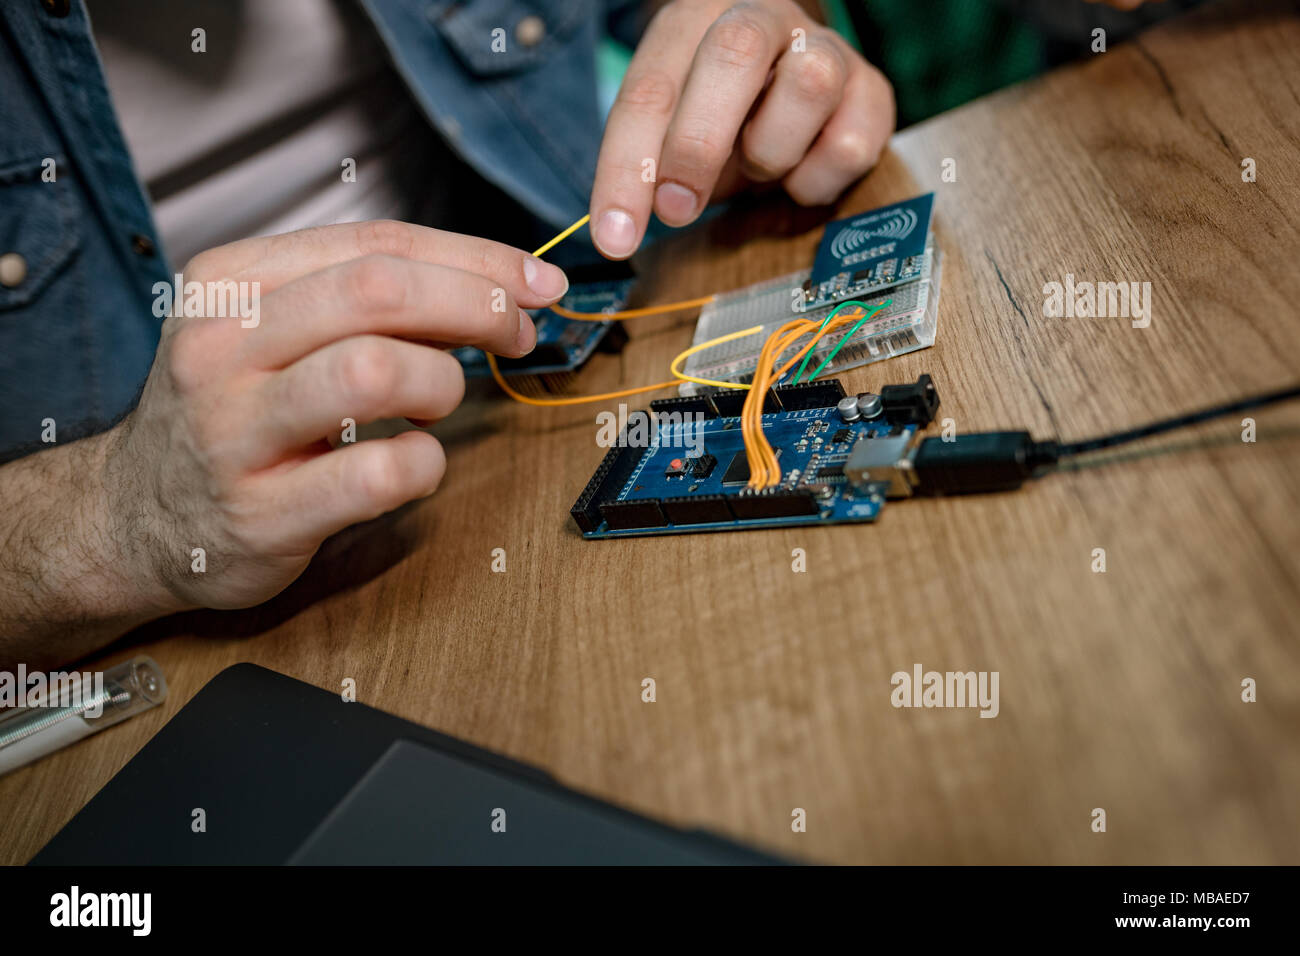 Close Up Of A Male Hands Soldering Circuit Board On The Table Stock